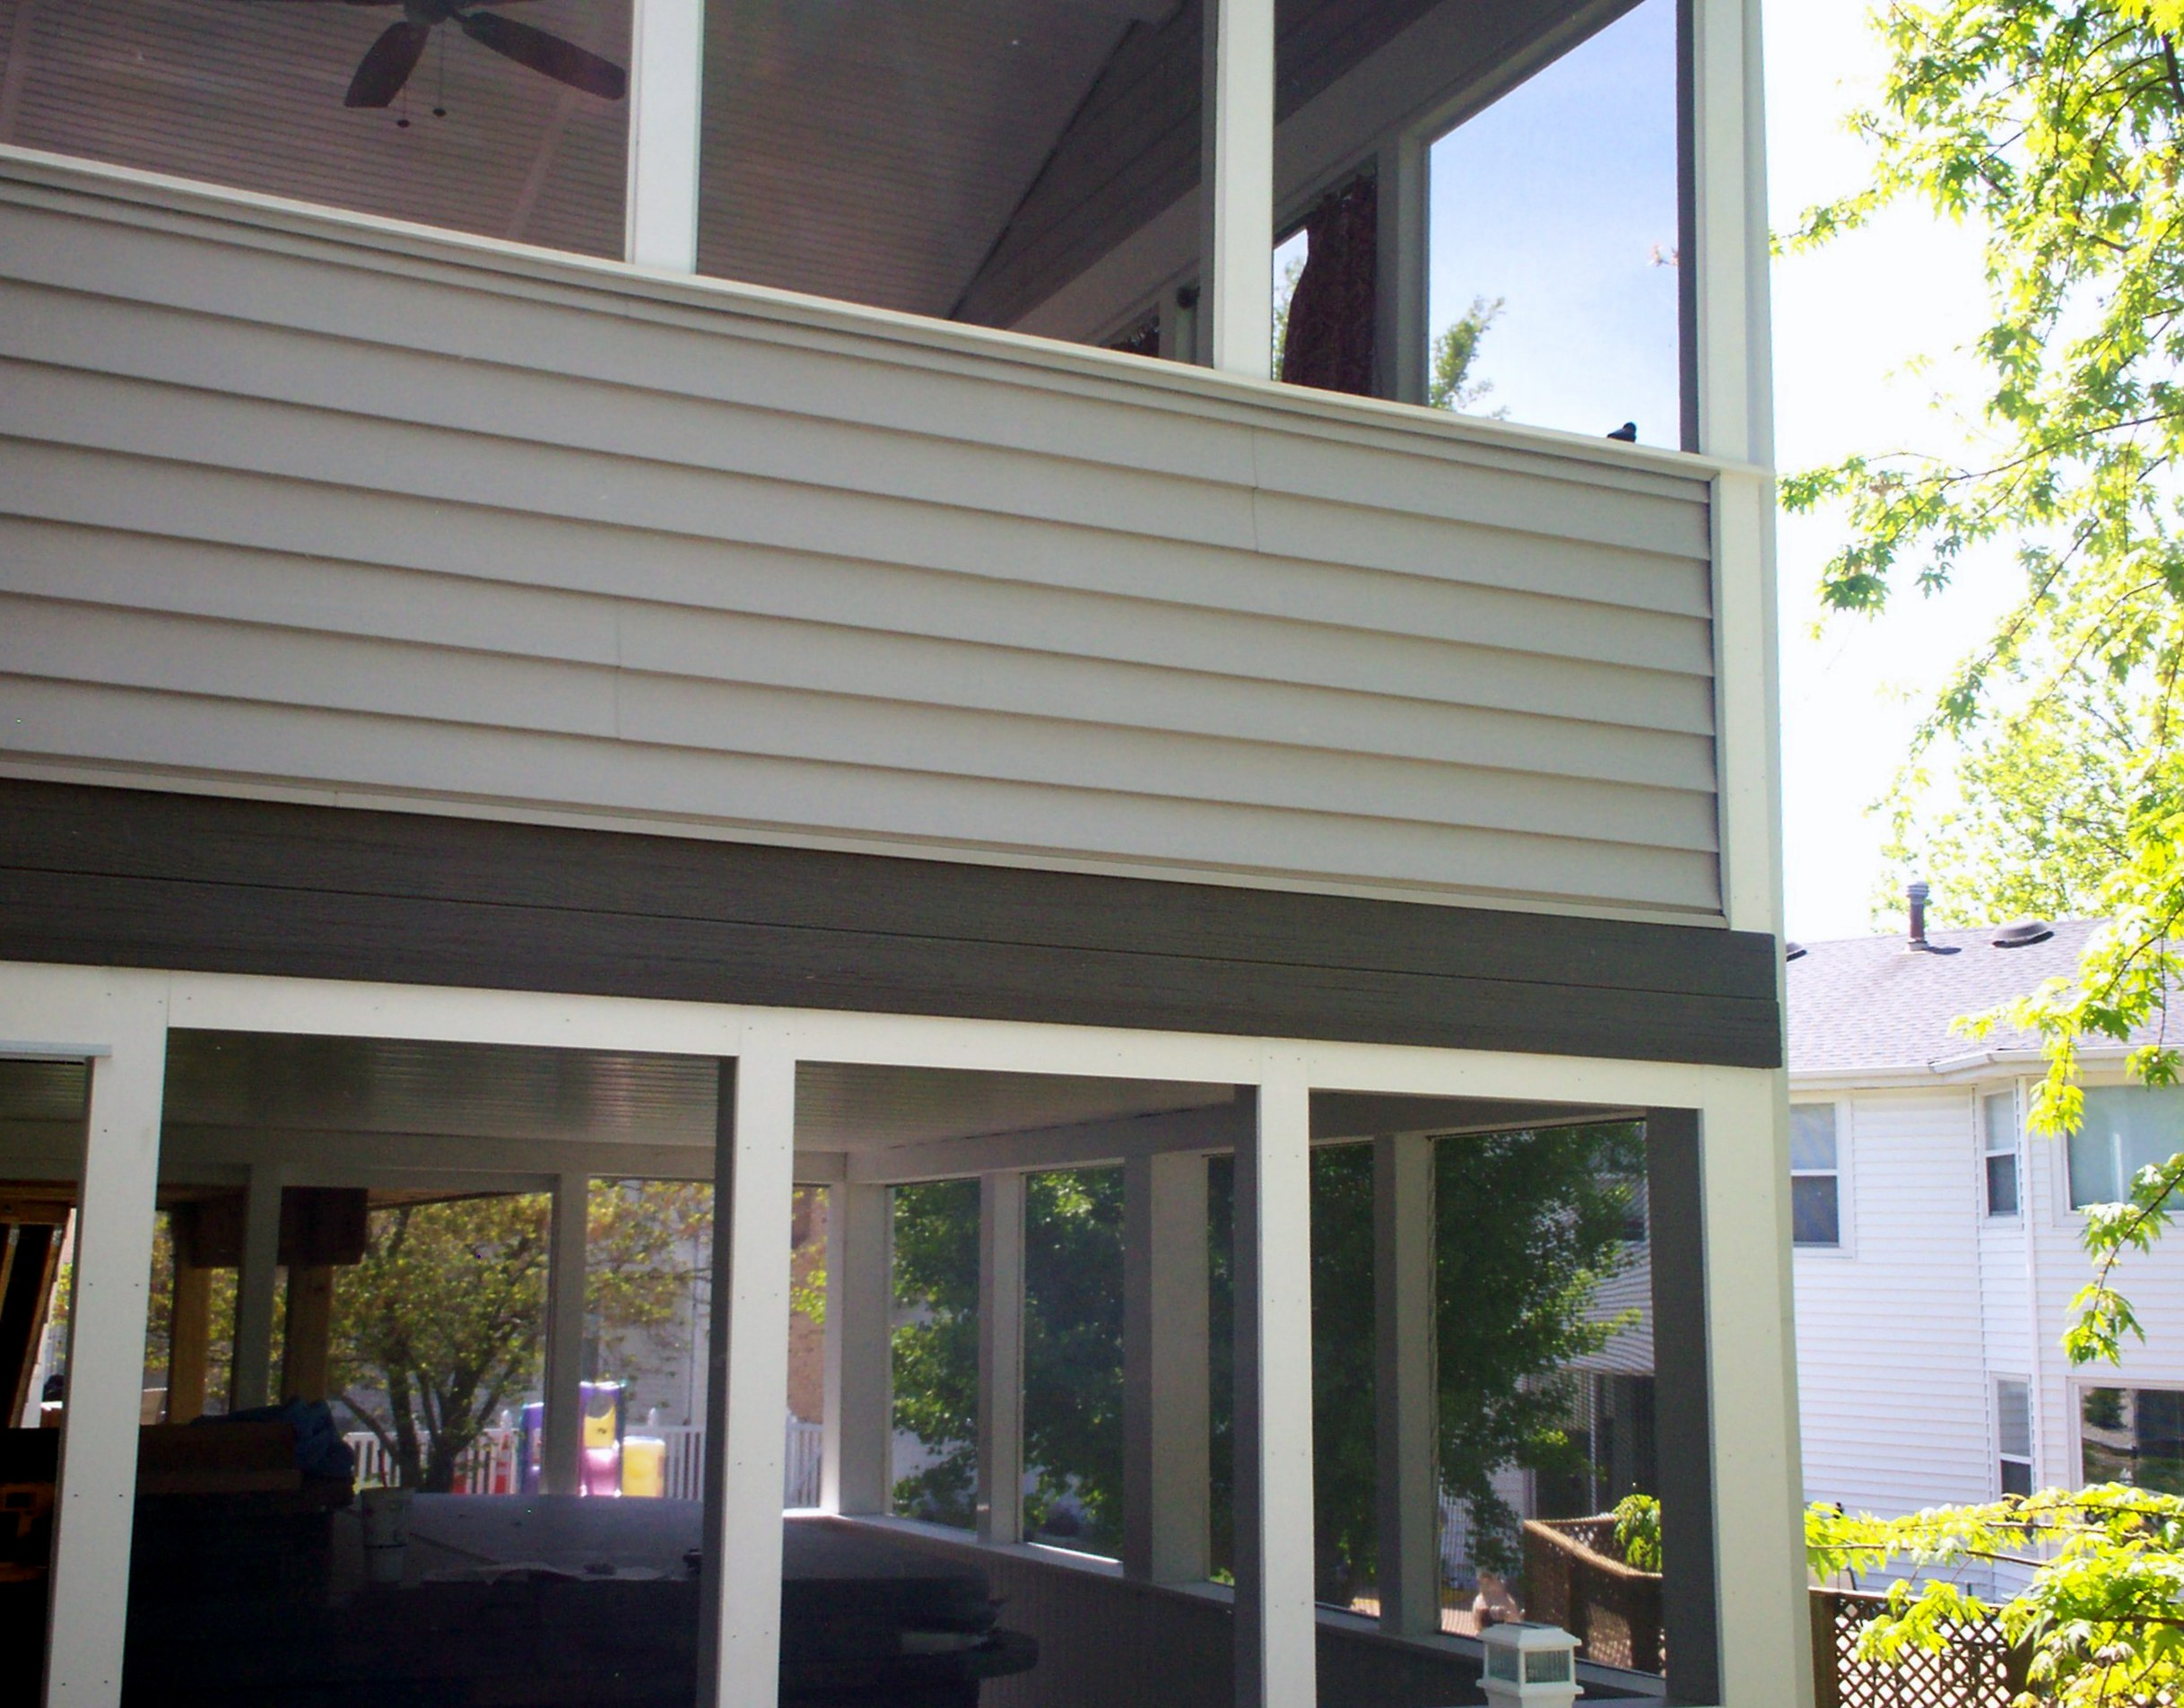 Add value to your home with outdoor living spaces st for A perfect image salon chesterfield mo